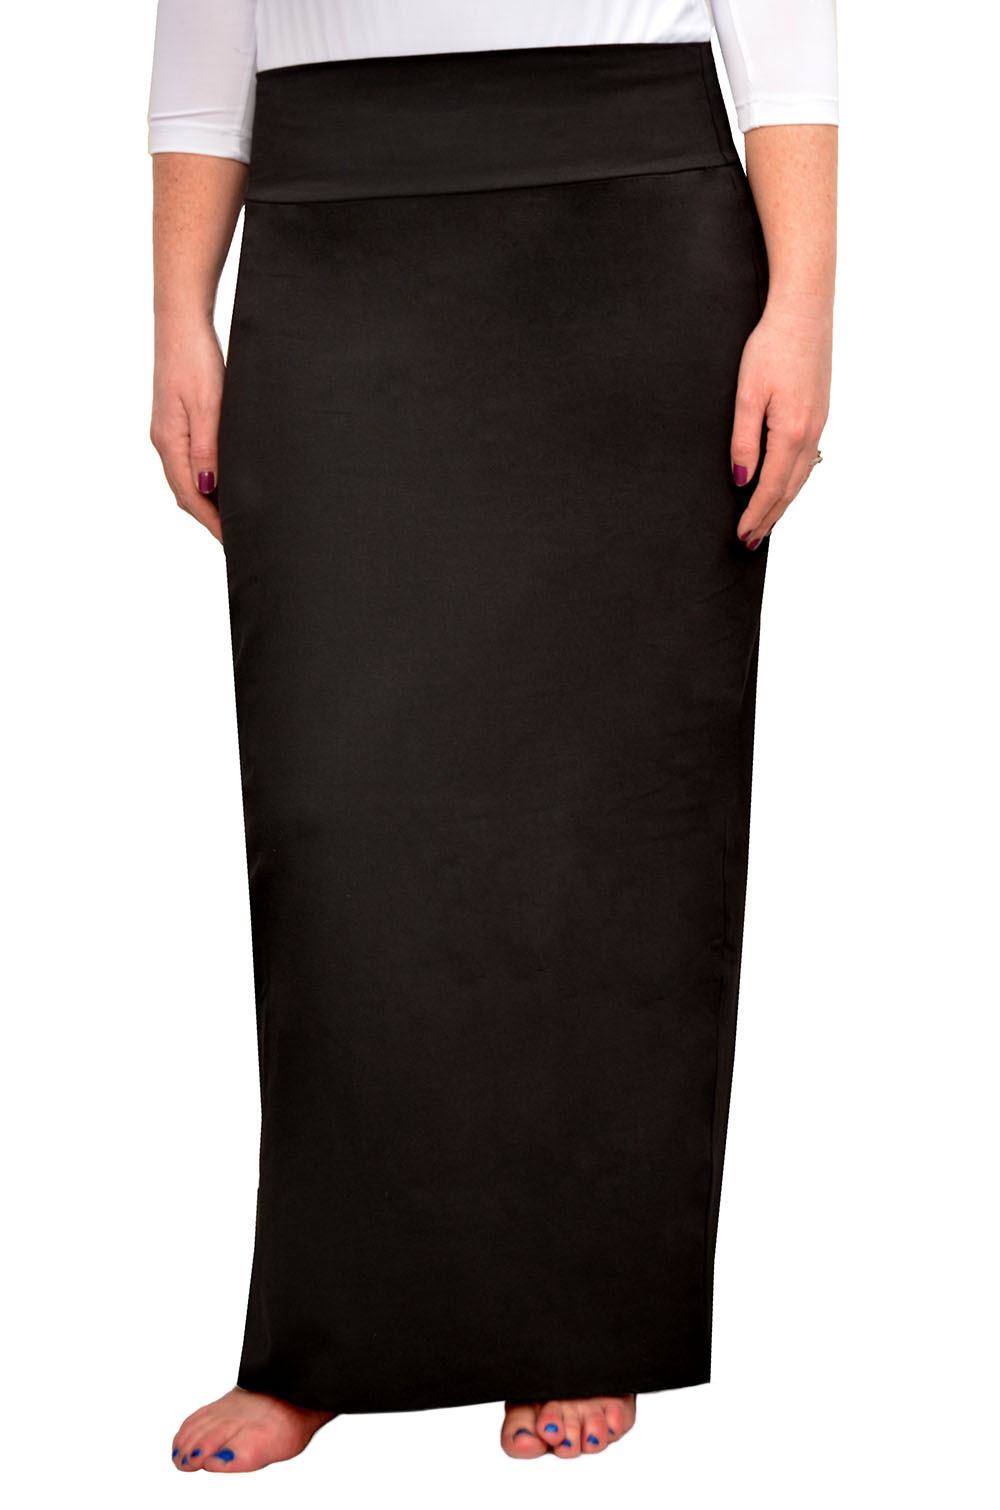 563112afb4cf Modest Skirts for Women - Long and Knee Length Skirts